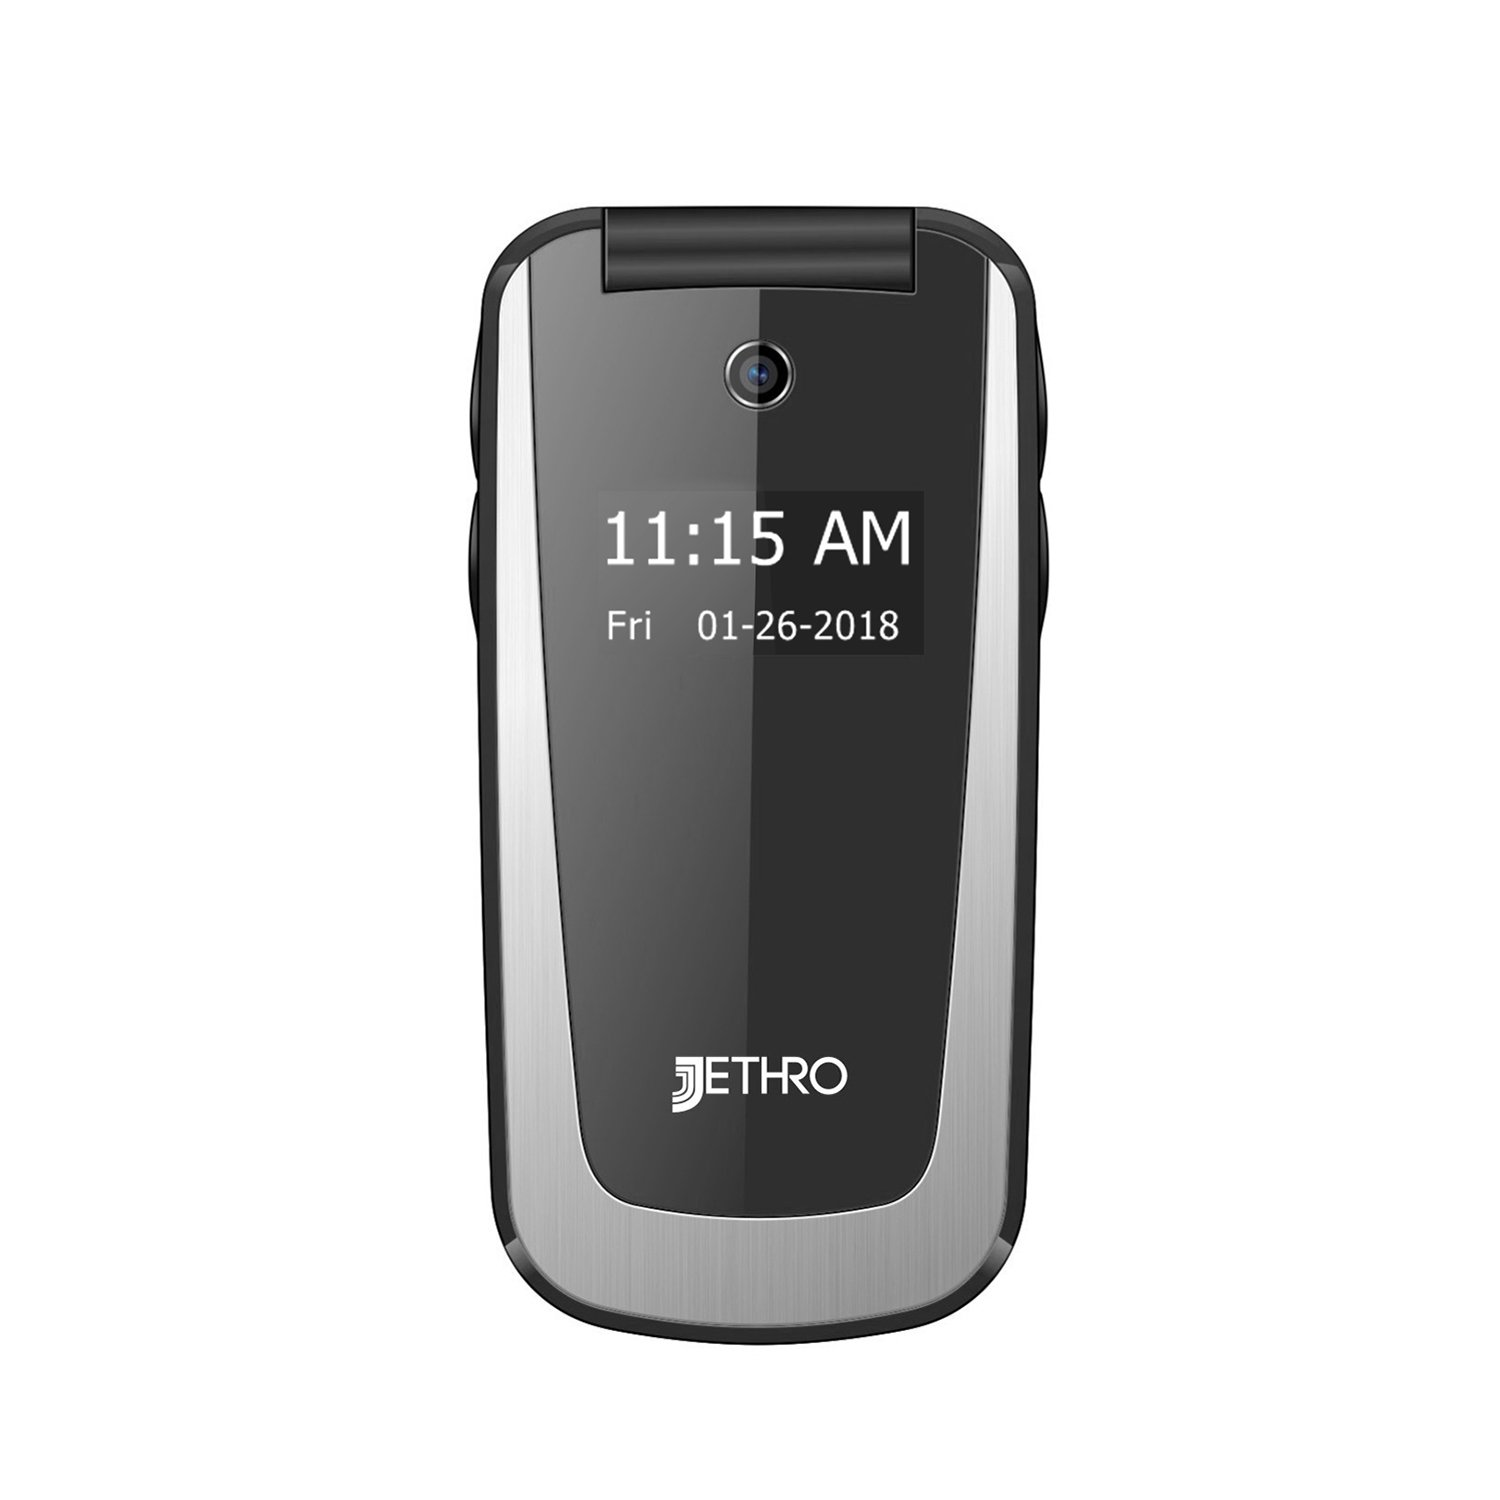 Jethro [SC729] 3G Unlocked Flip Senior & Kids Cell Phone, M4/T4 HAC Hearing Aid Compatible, FCC/IC Certified, SOS Emergency Button, 2.4'' LCD and Large Keypad w/Charging Cradle by Jethro (Image #5)